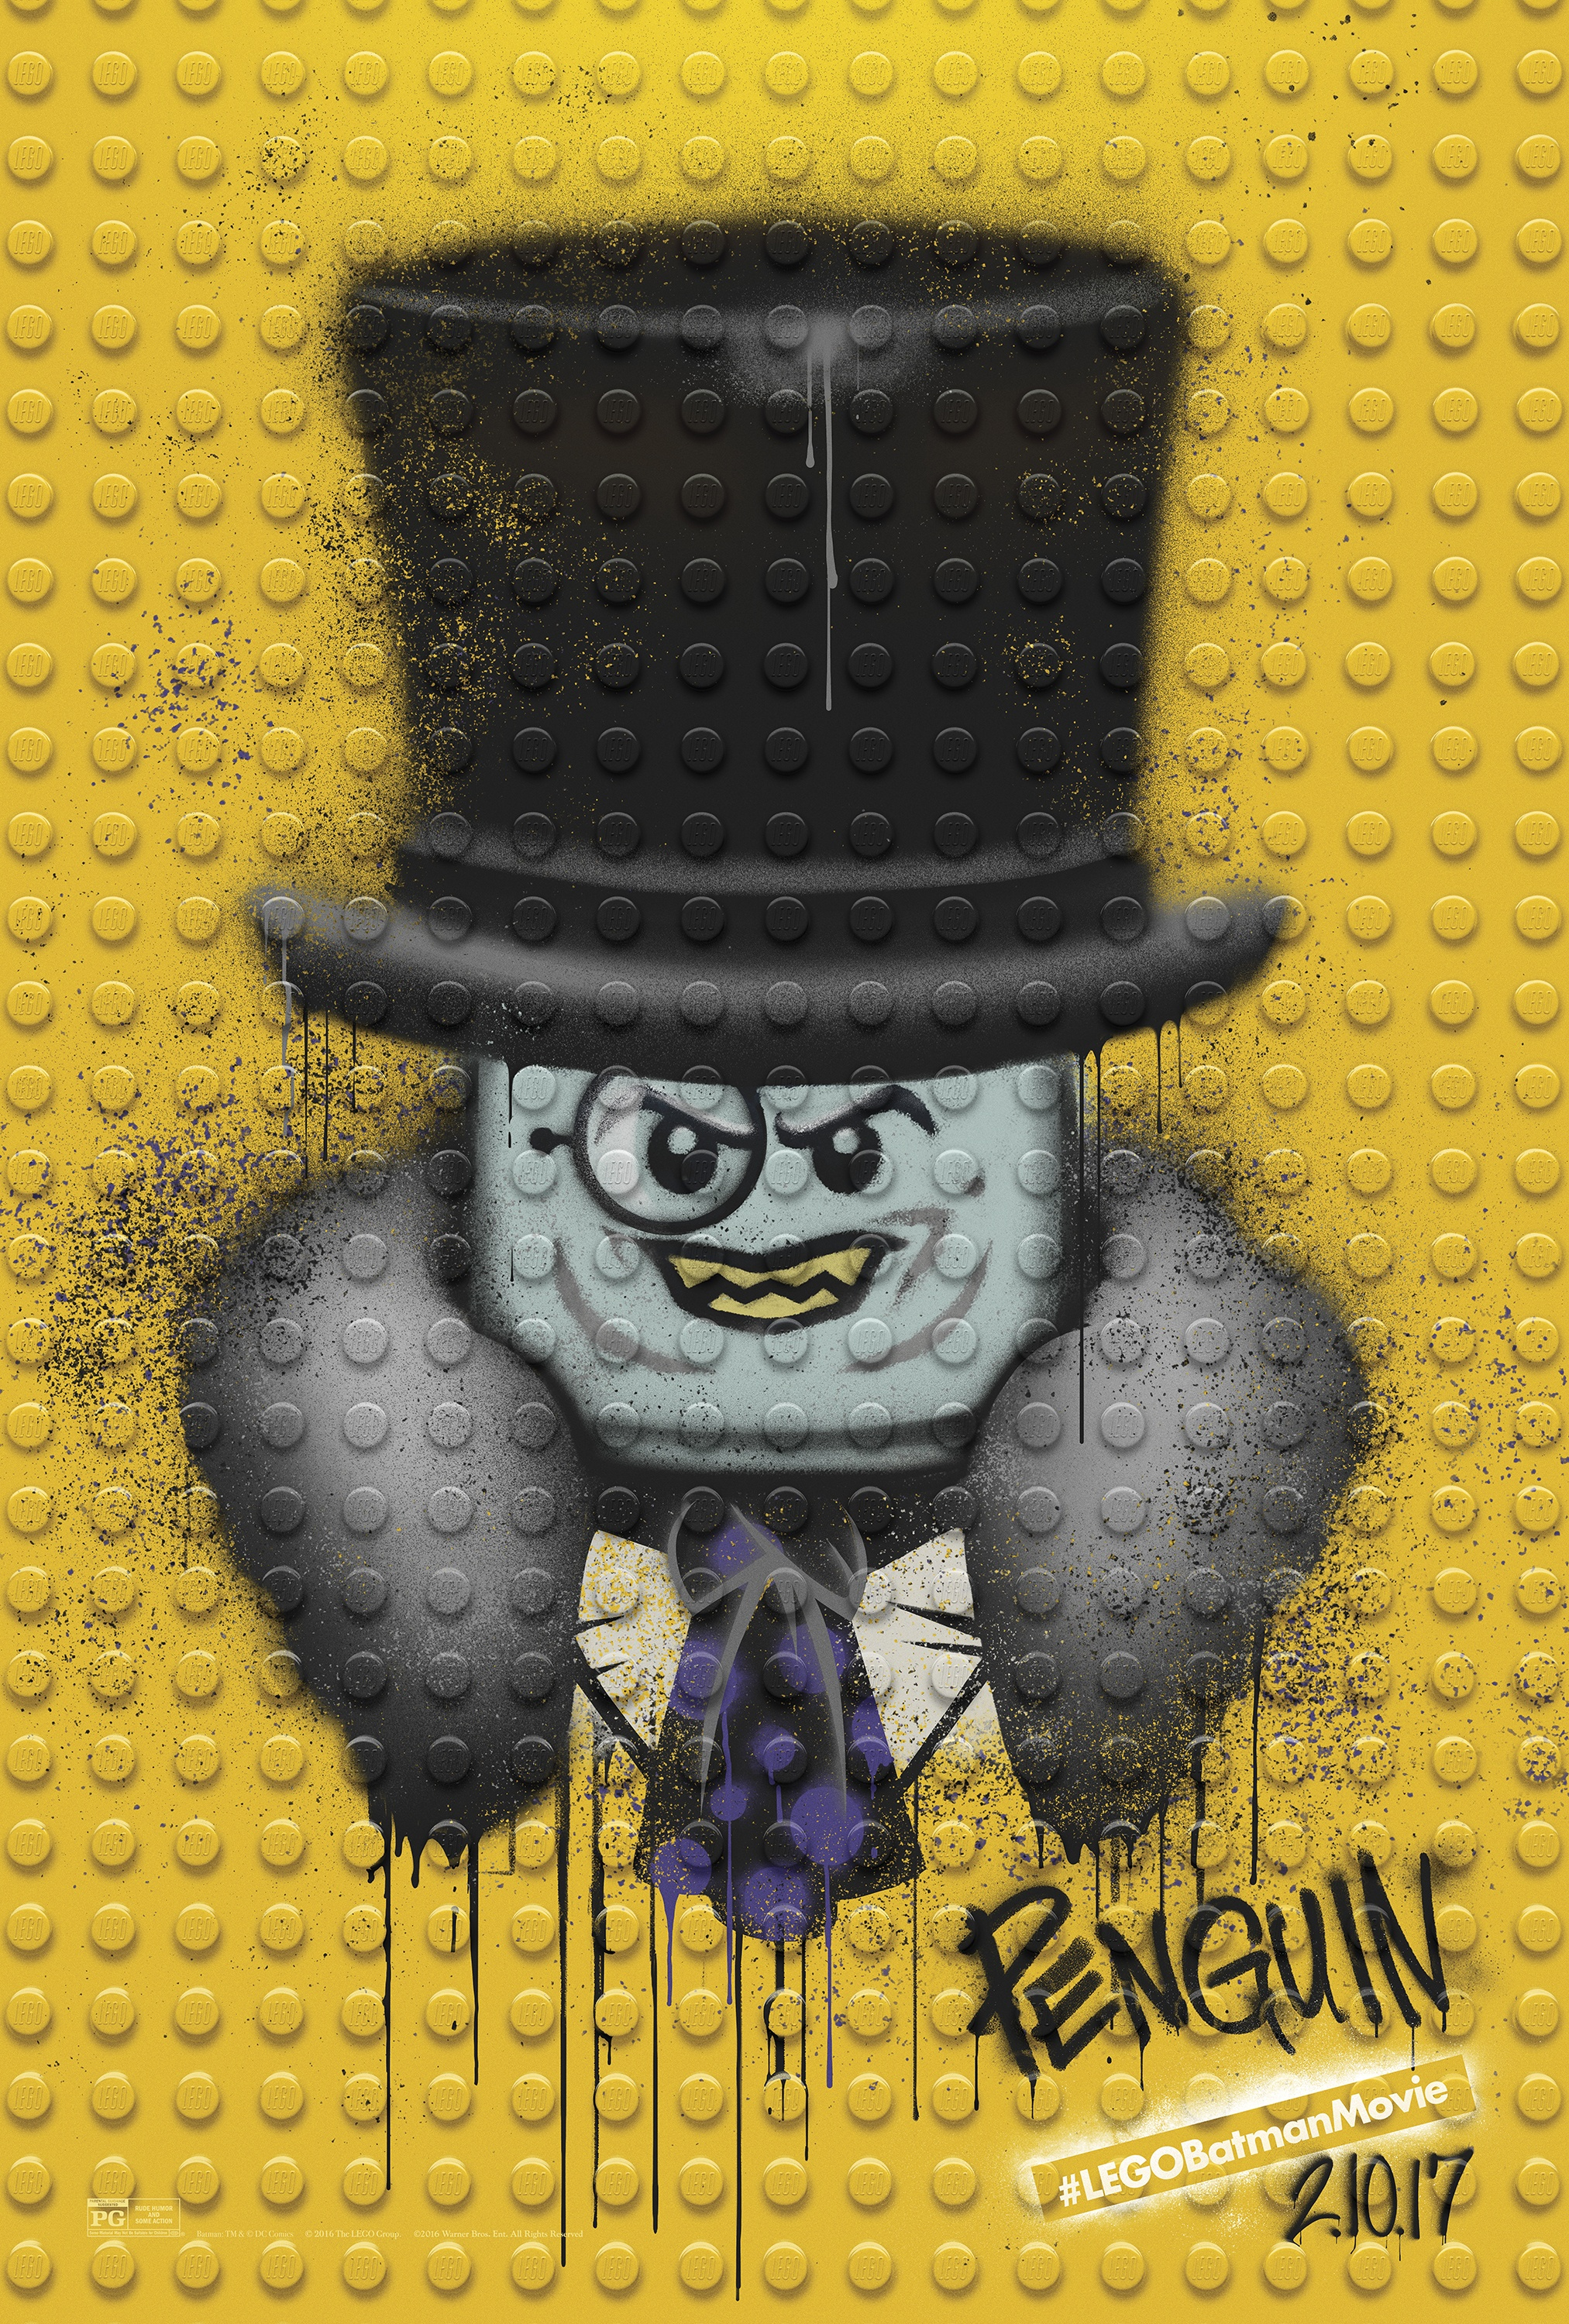 Thumbnail for The LEGO Batman Movie - Graffiti Wild Postings | Penguin